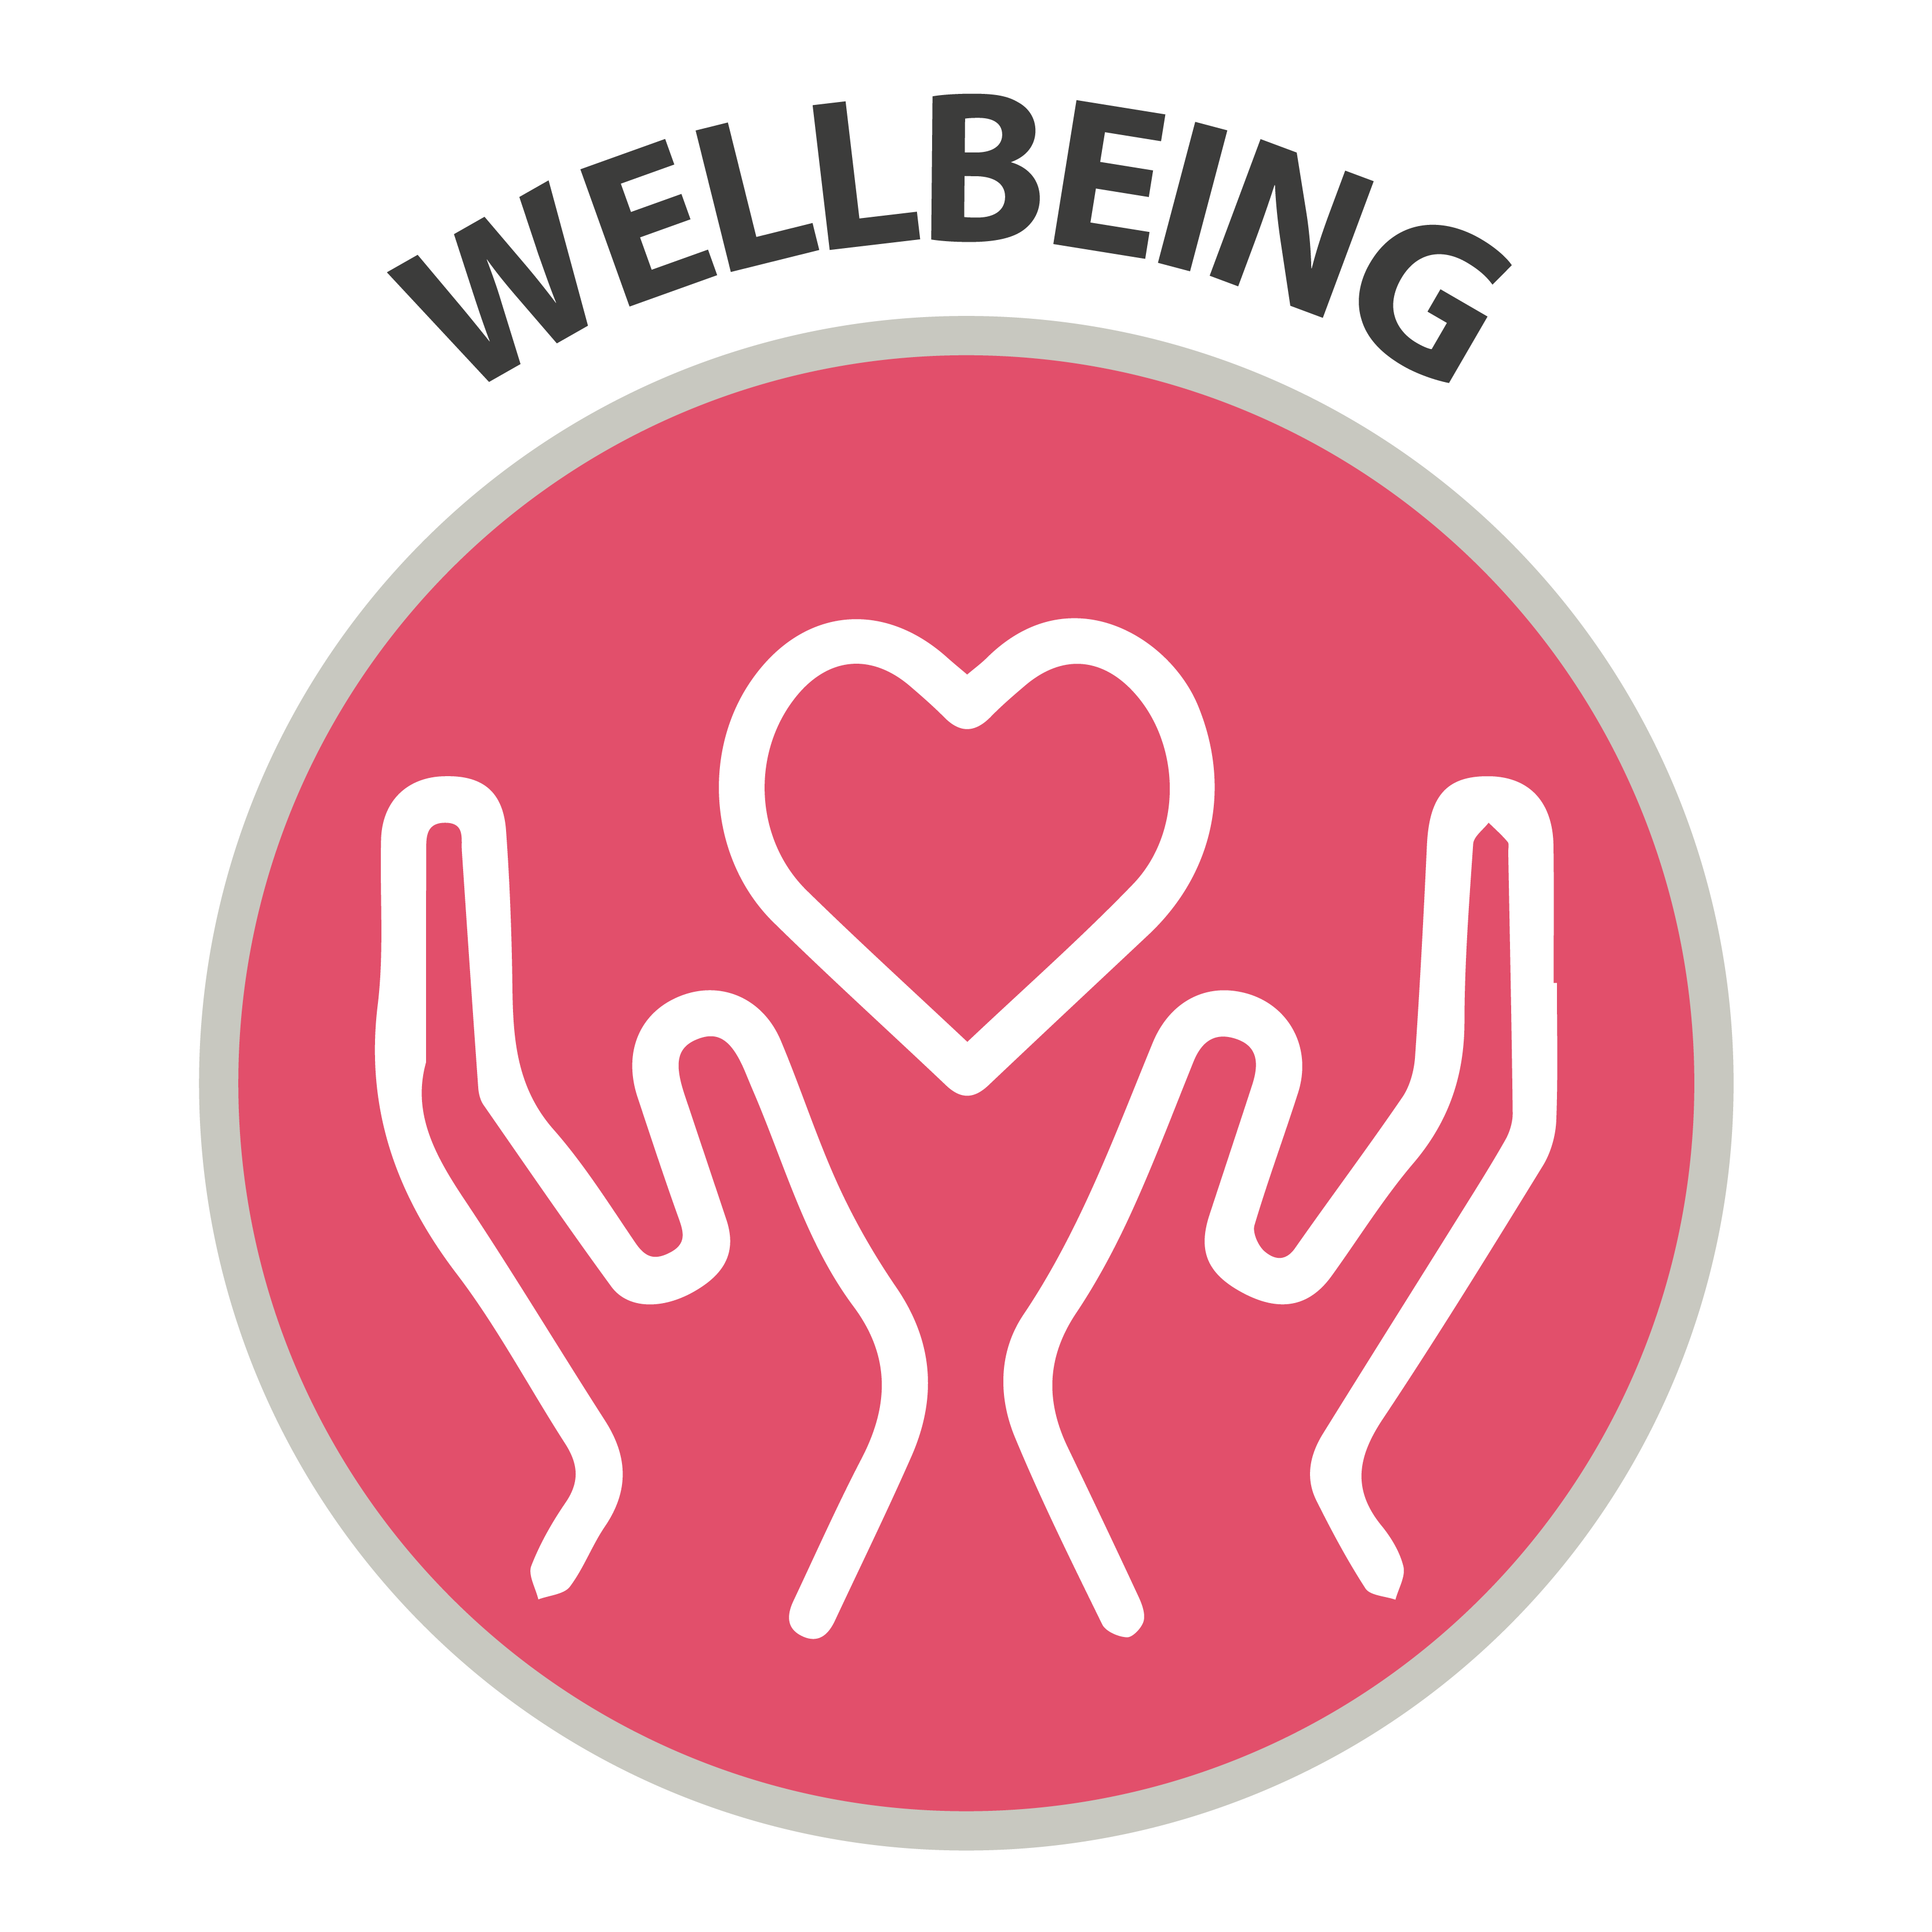 Wellbeing - icon of open hands and heart symbol